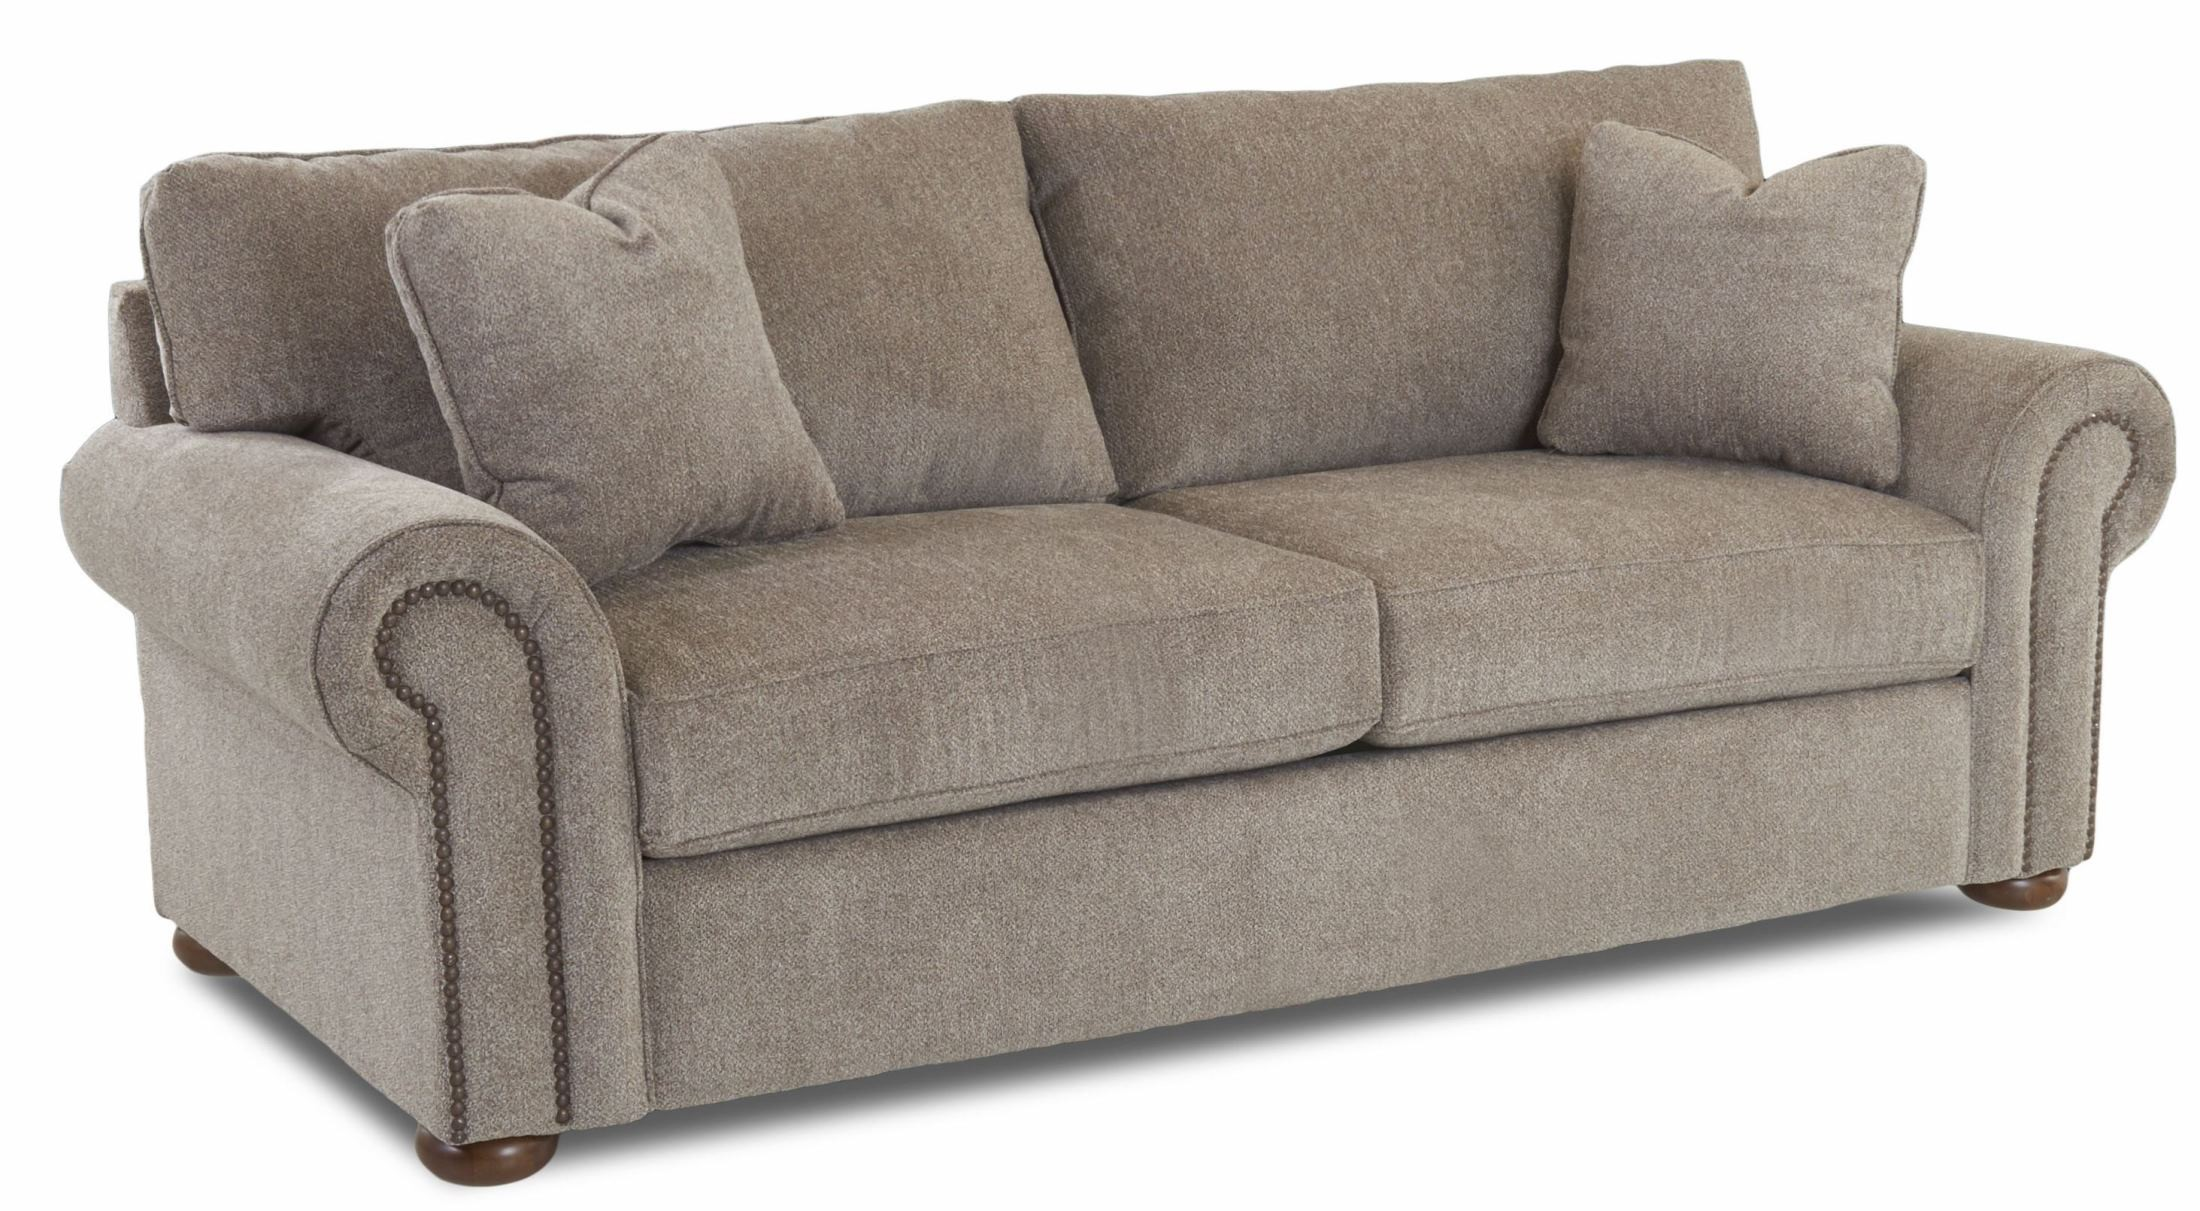 Sienna Pewter Furby Sofa From Klaussner Coleman Furniture